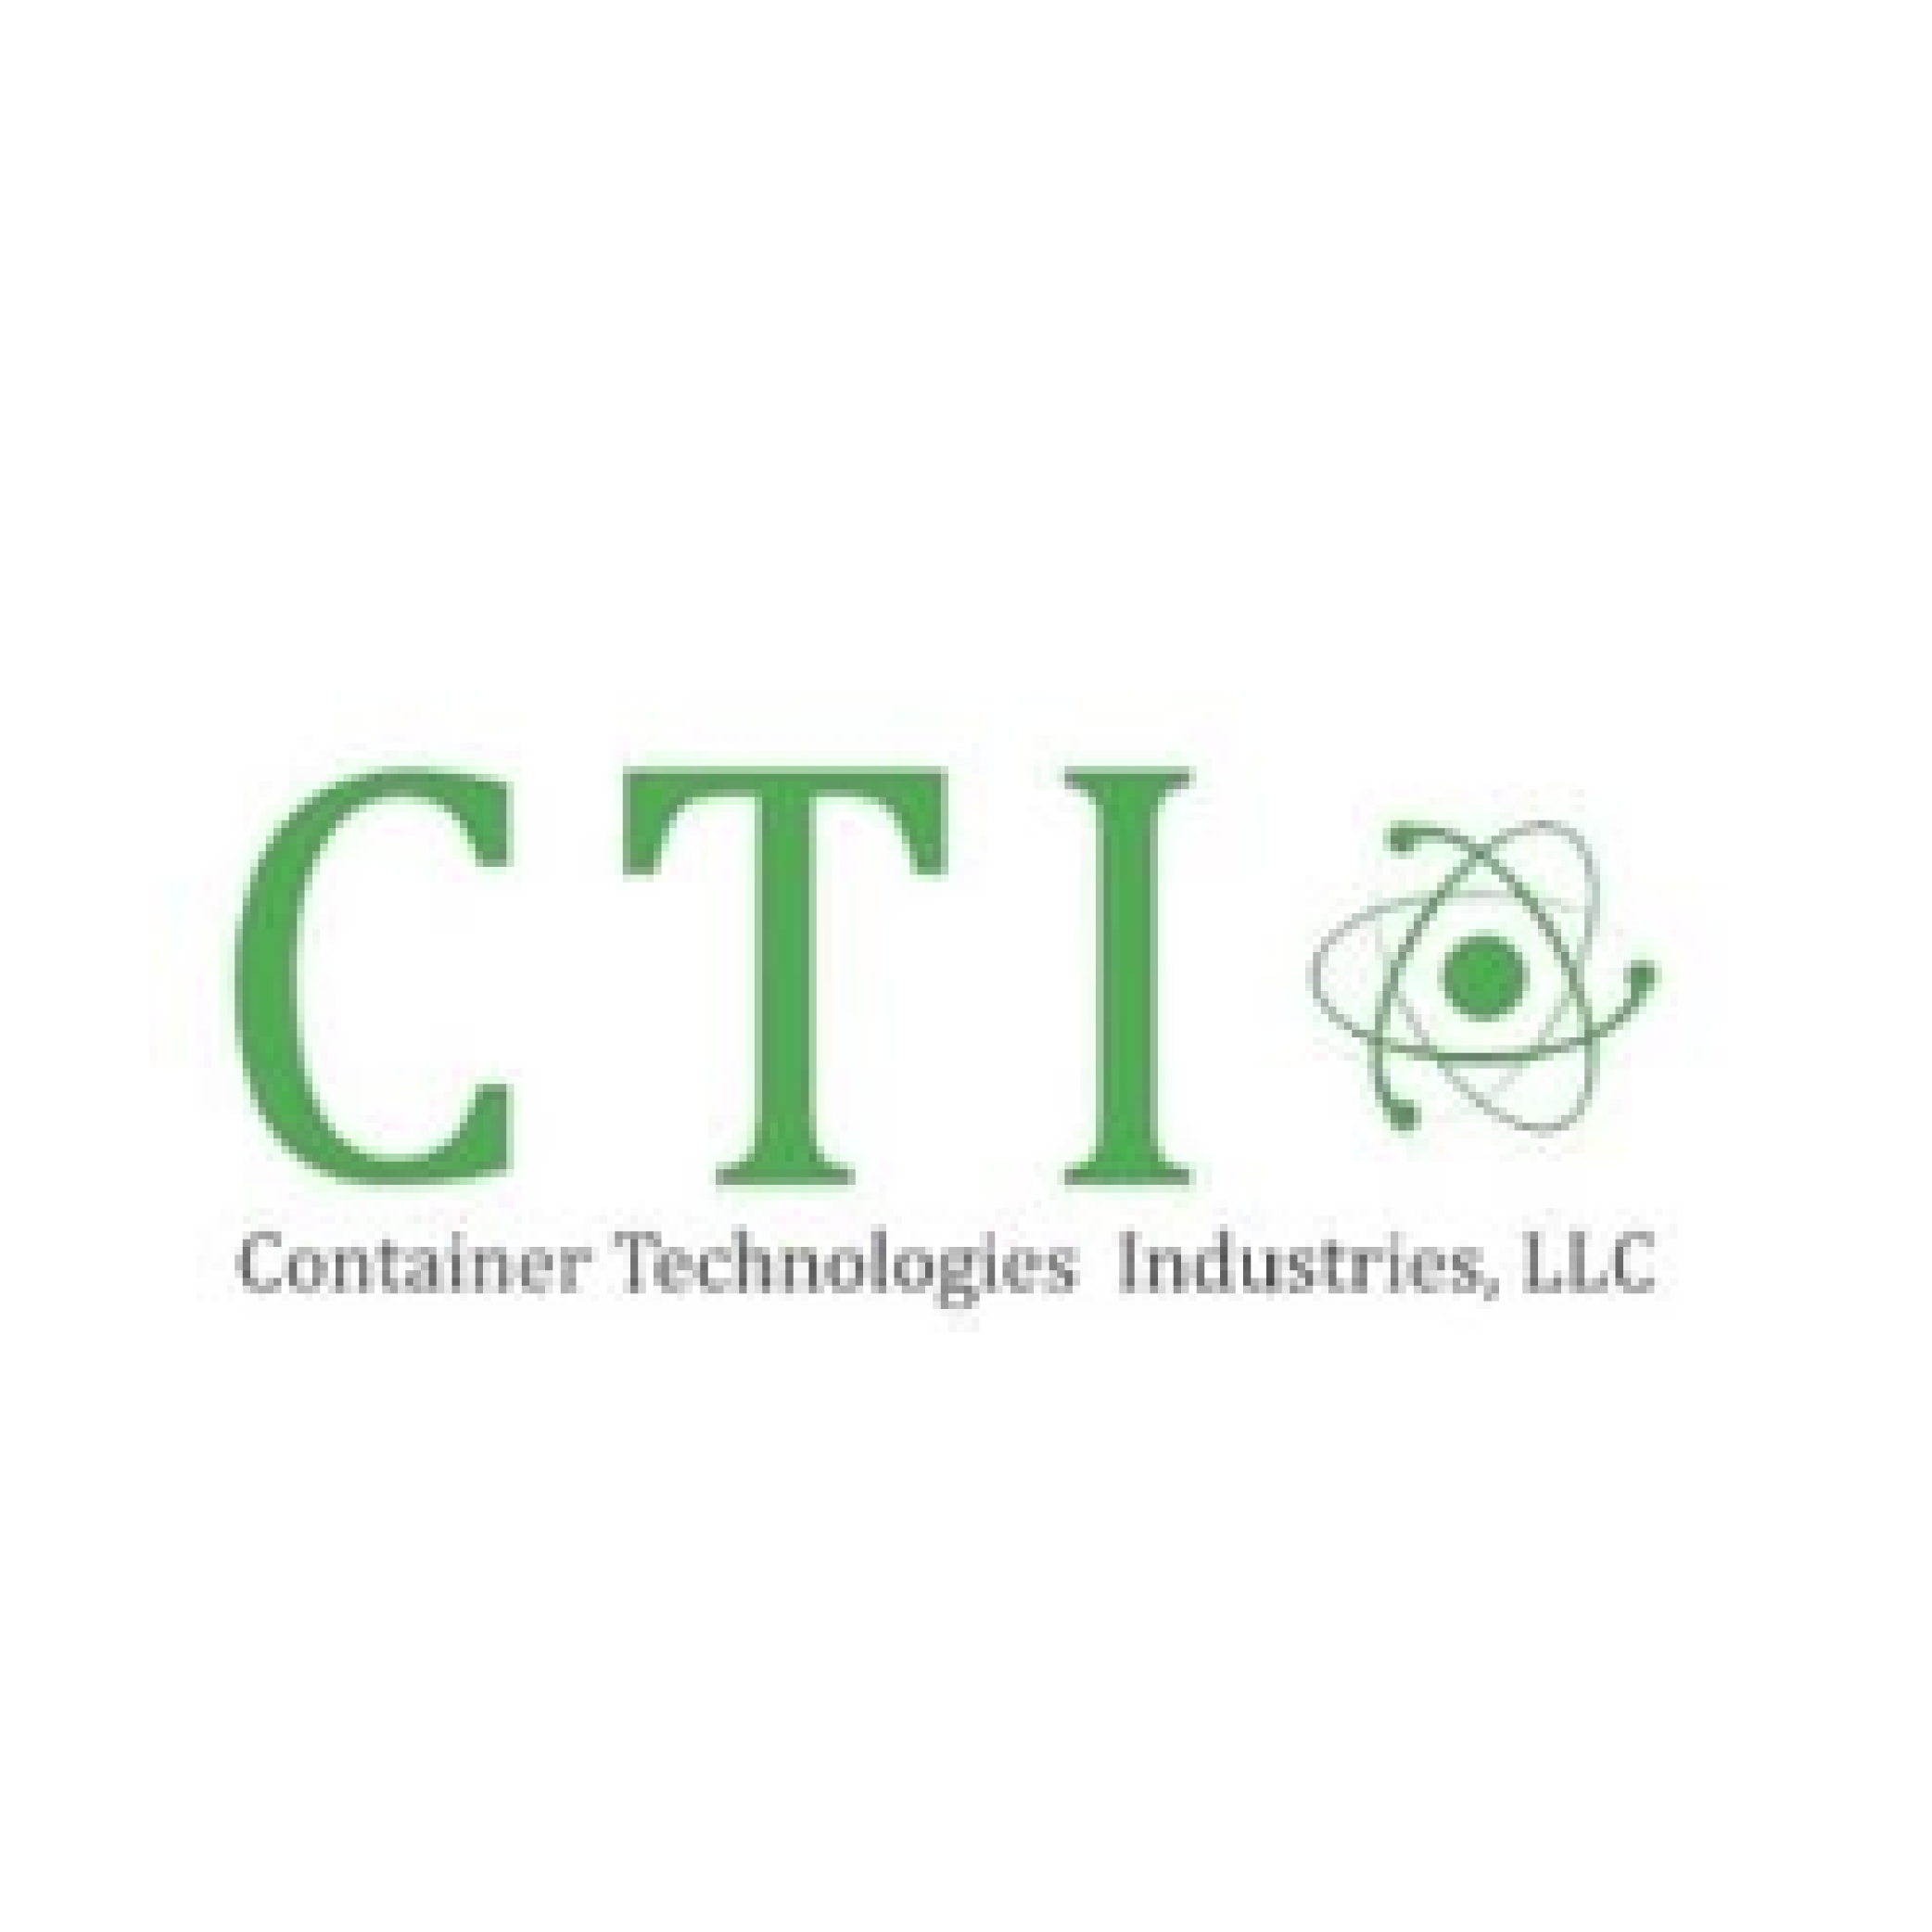 Container Technologies Industries, LLC Logo